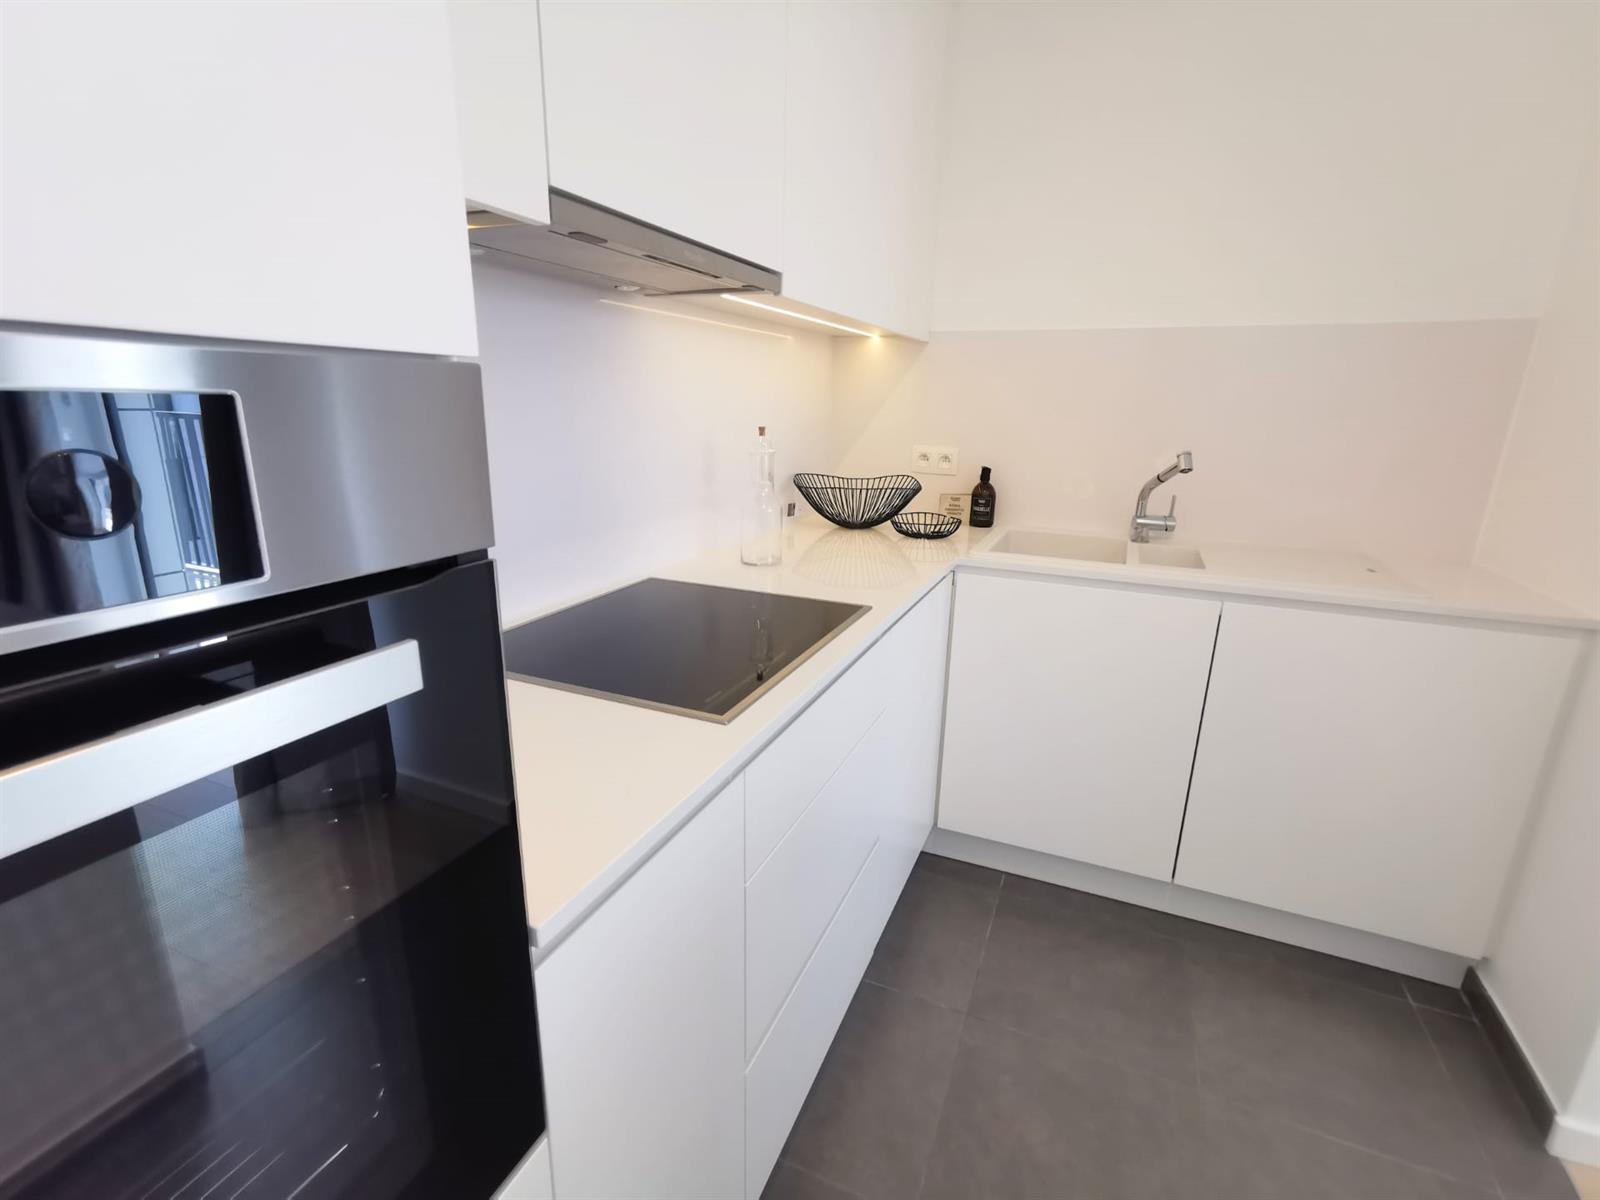 Appartement - Evere - #4455491-4